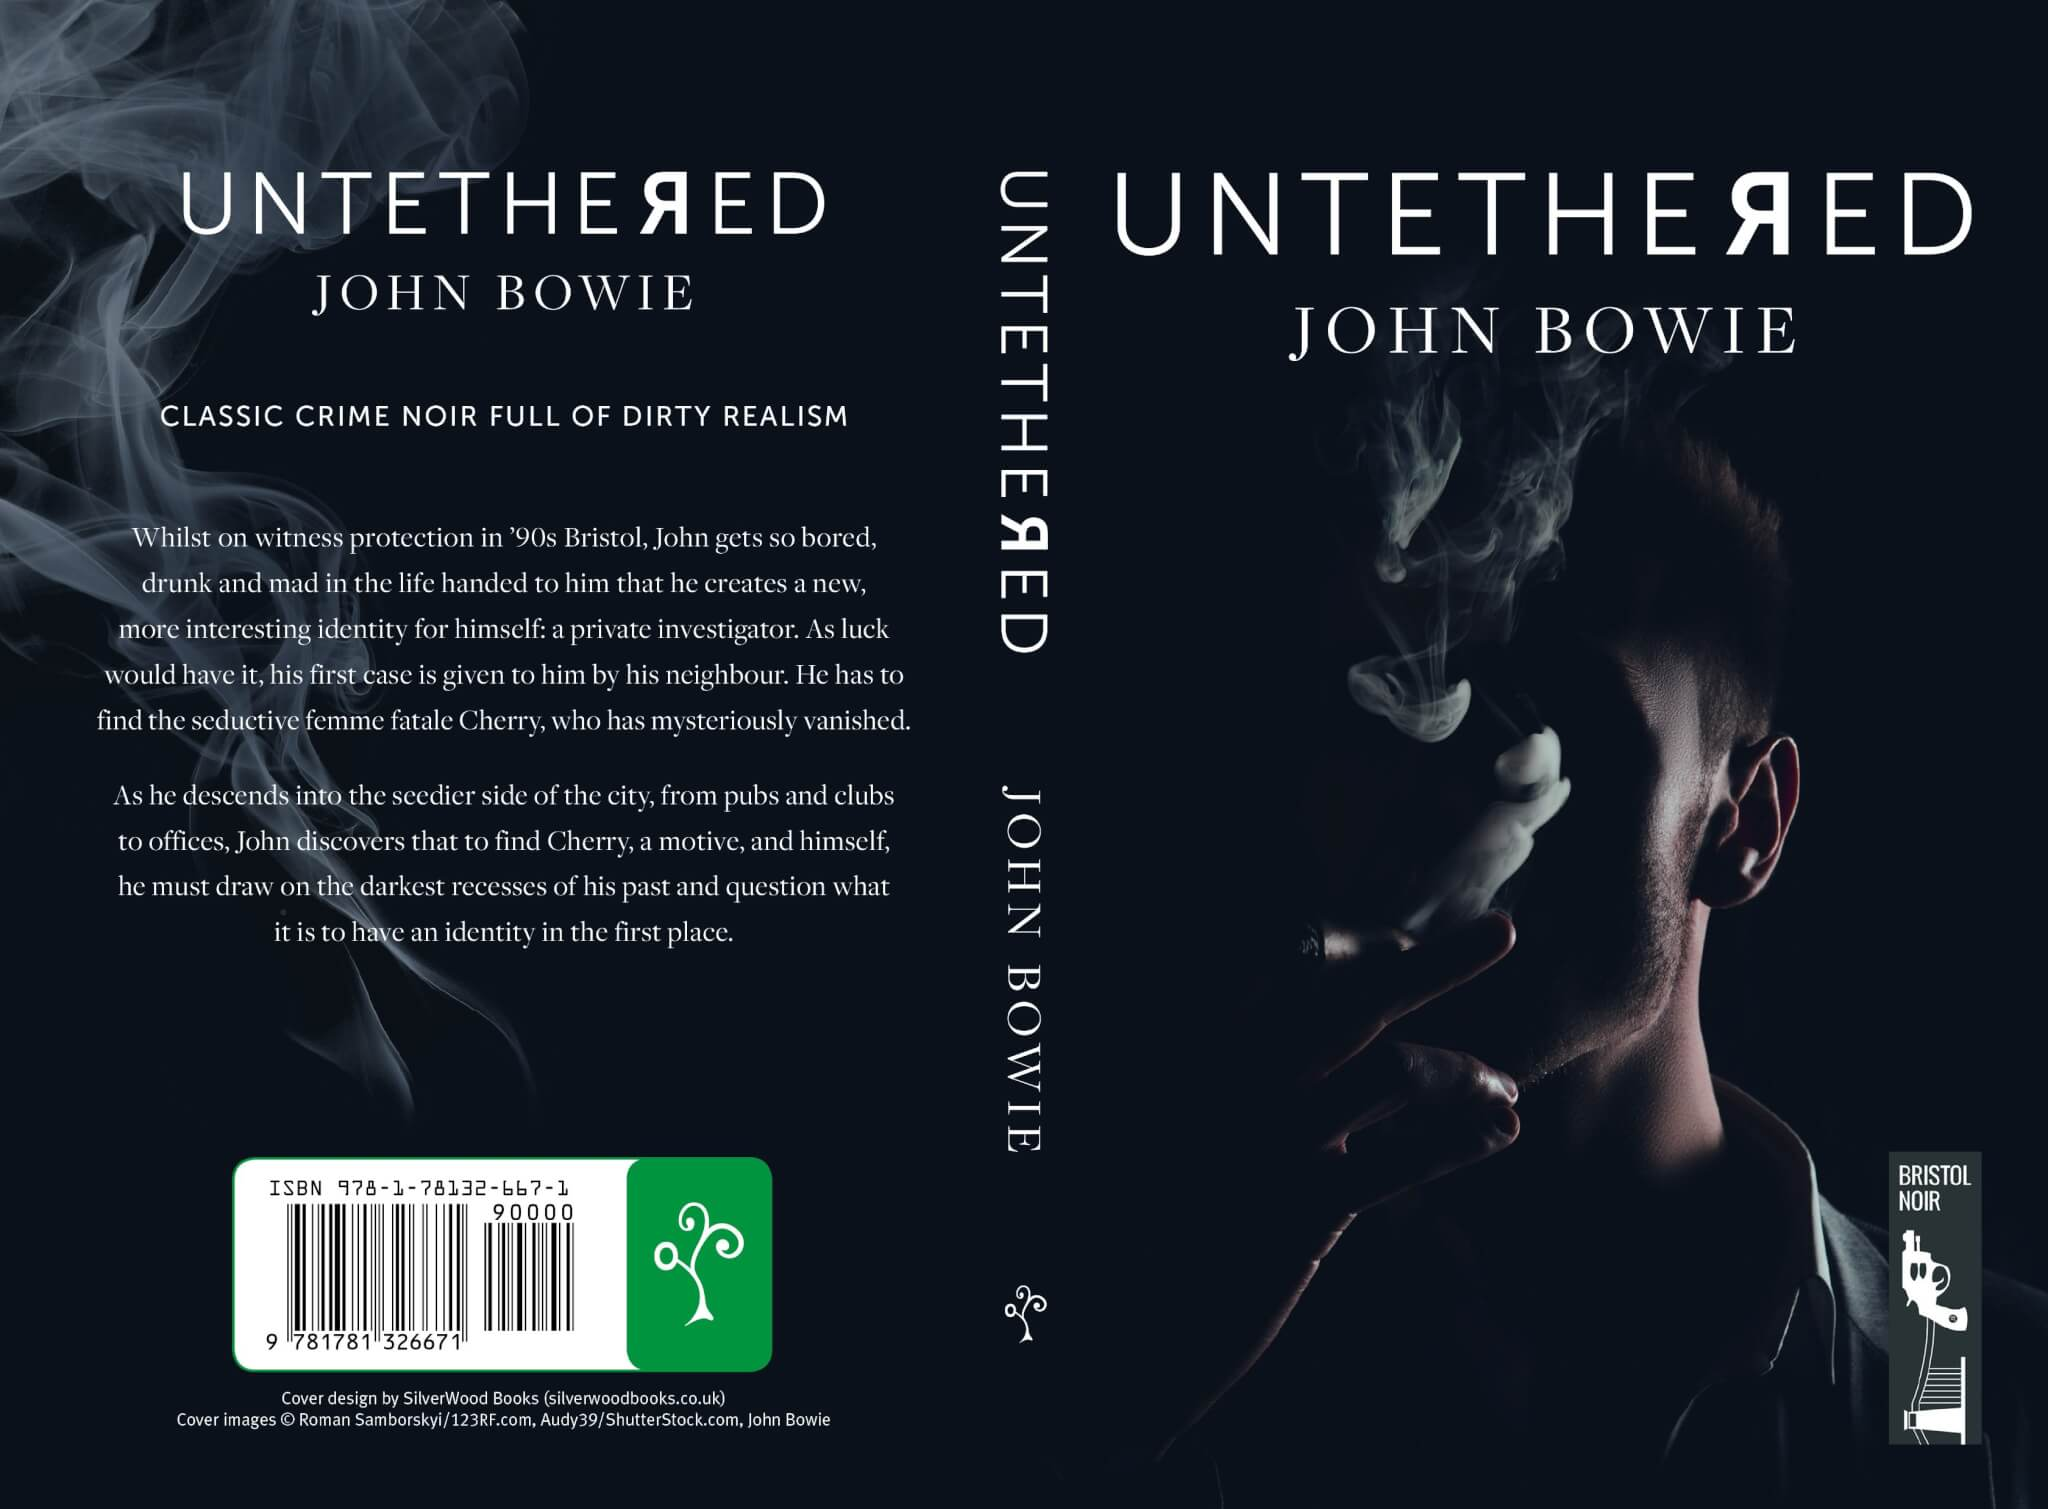 Untethered by John Bowie